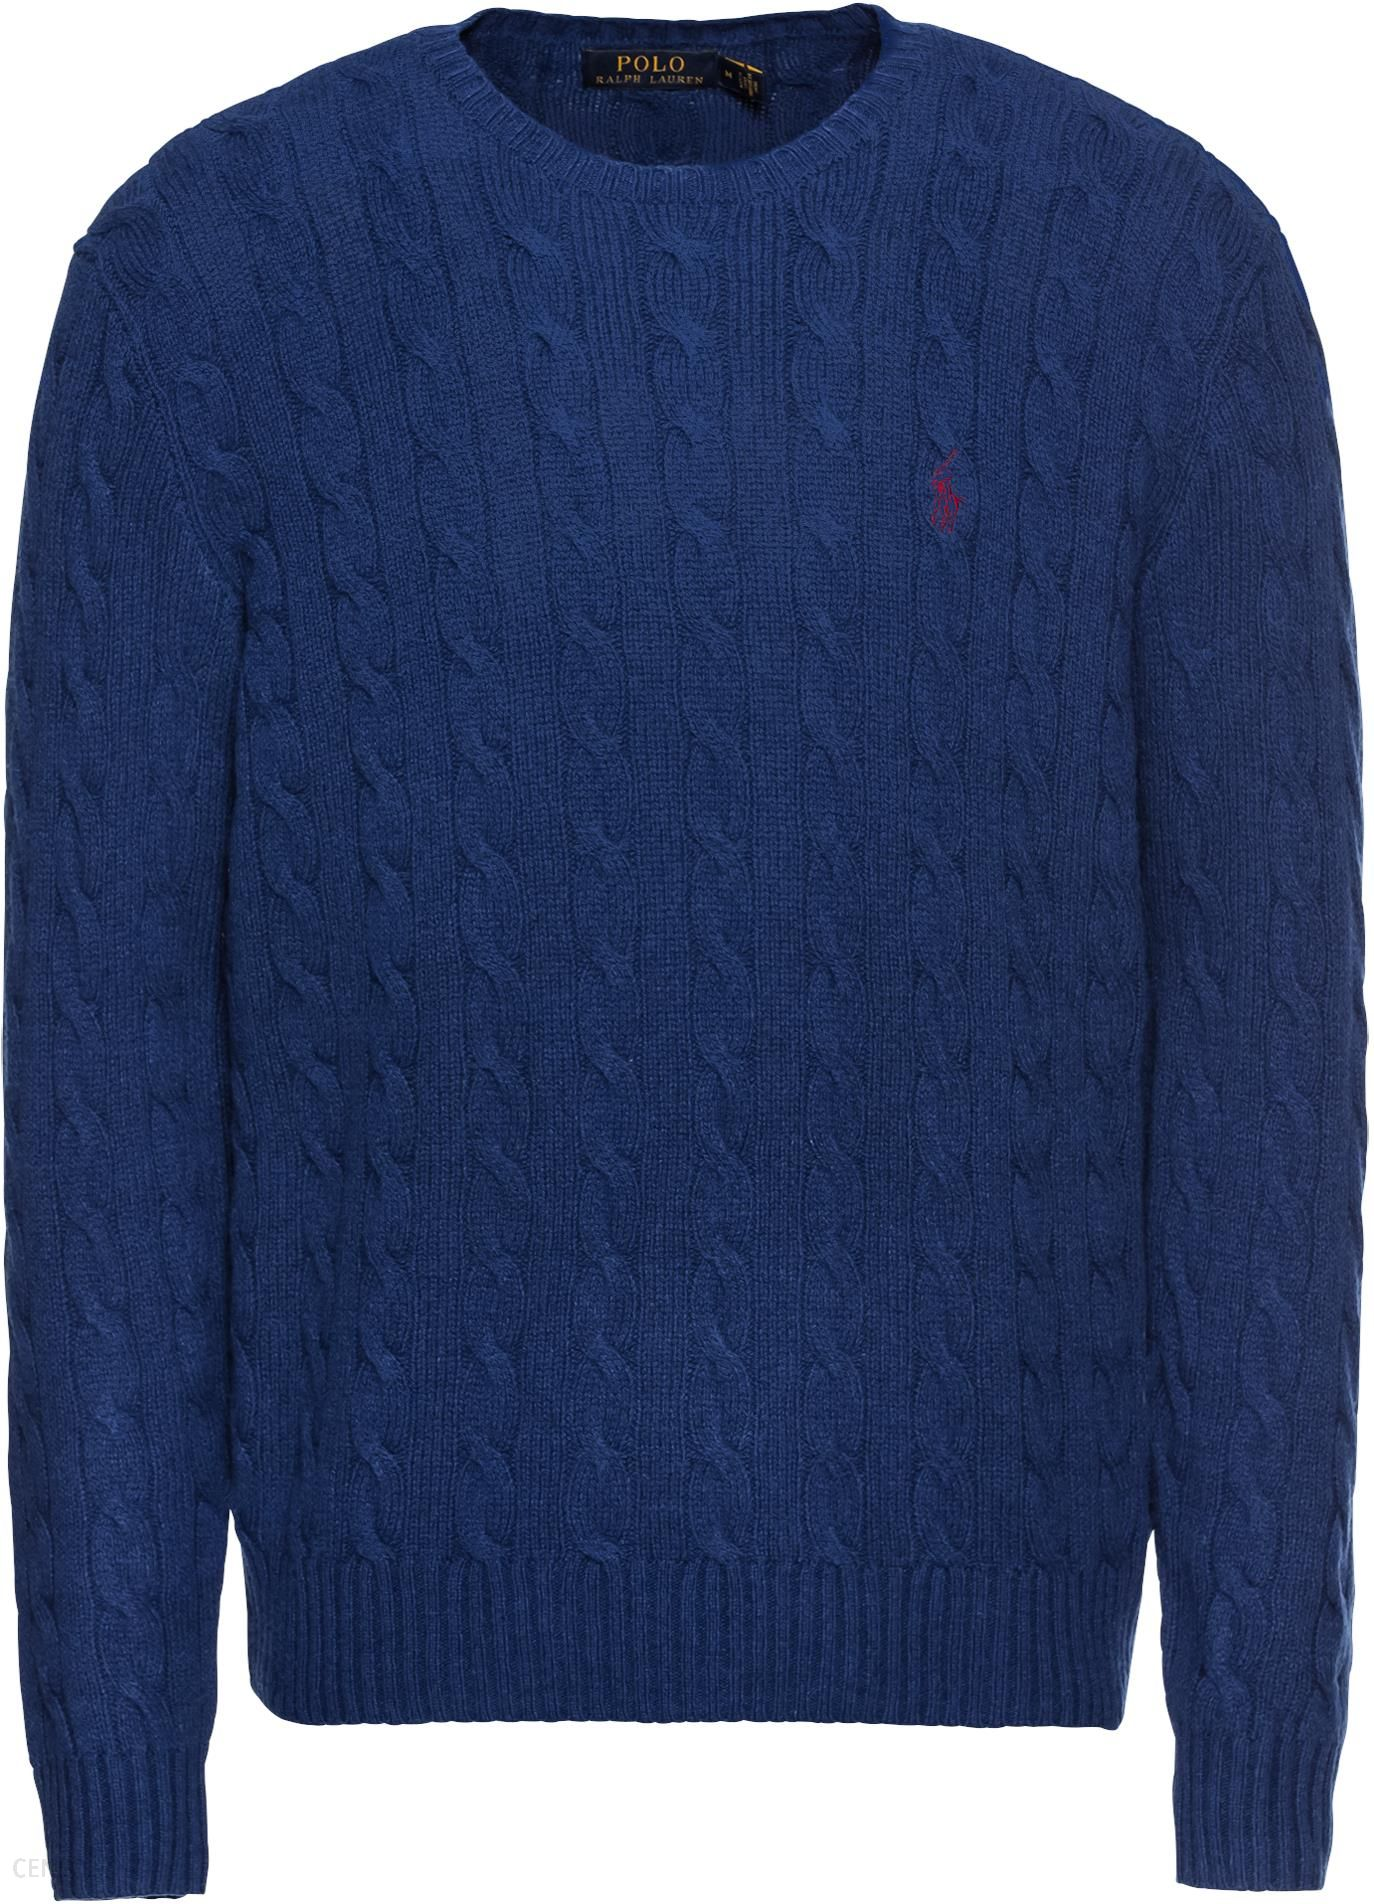 082494ce41e9 POLO RALPH LAUREN Sweter  LS CABLE CN-LONG SLEEVE-SWEATER  - Ceny i ...